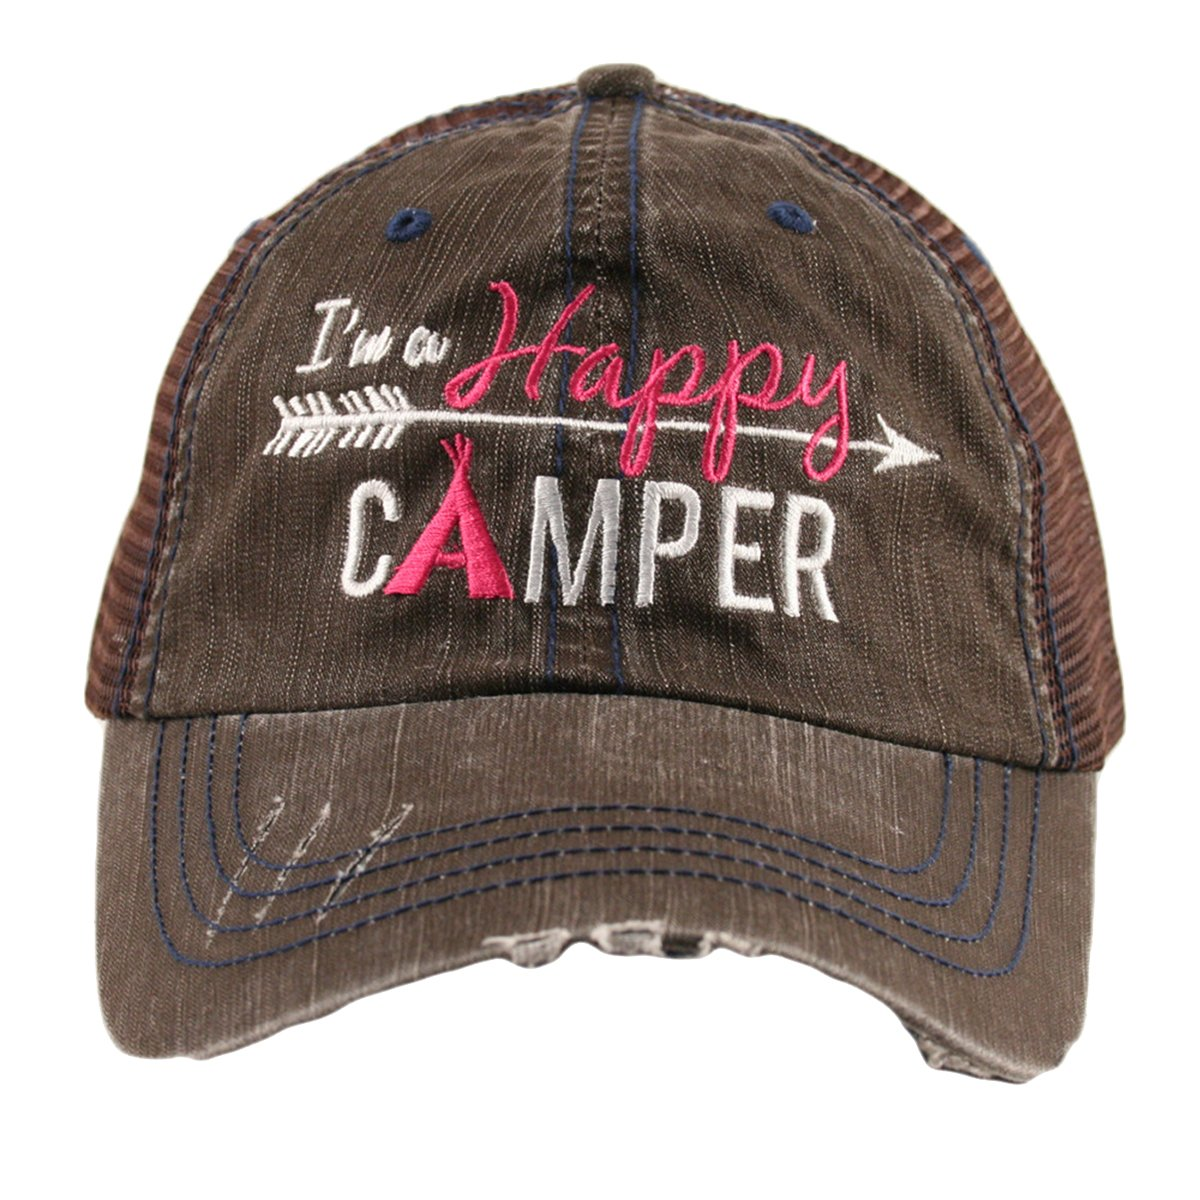 Katydid I'm A Happy Camper Women's Mesh Trucker Hat Cap KDC-TC-122